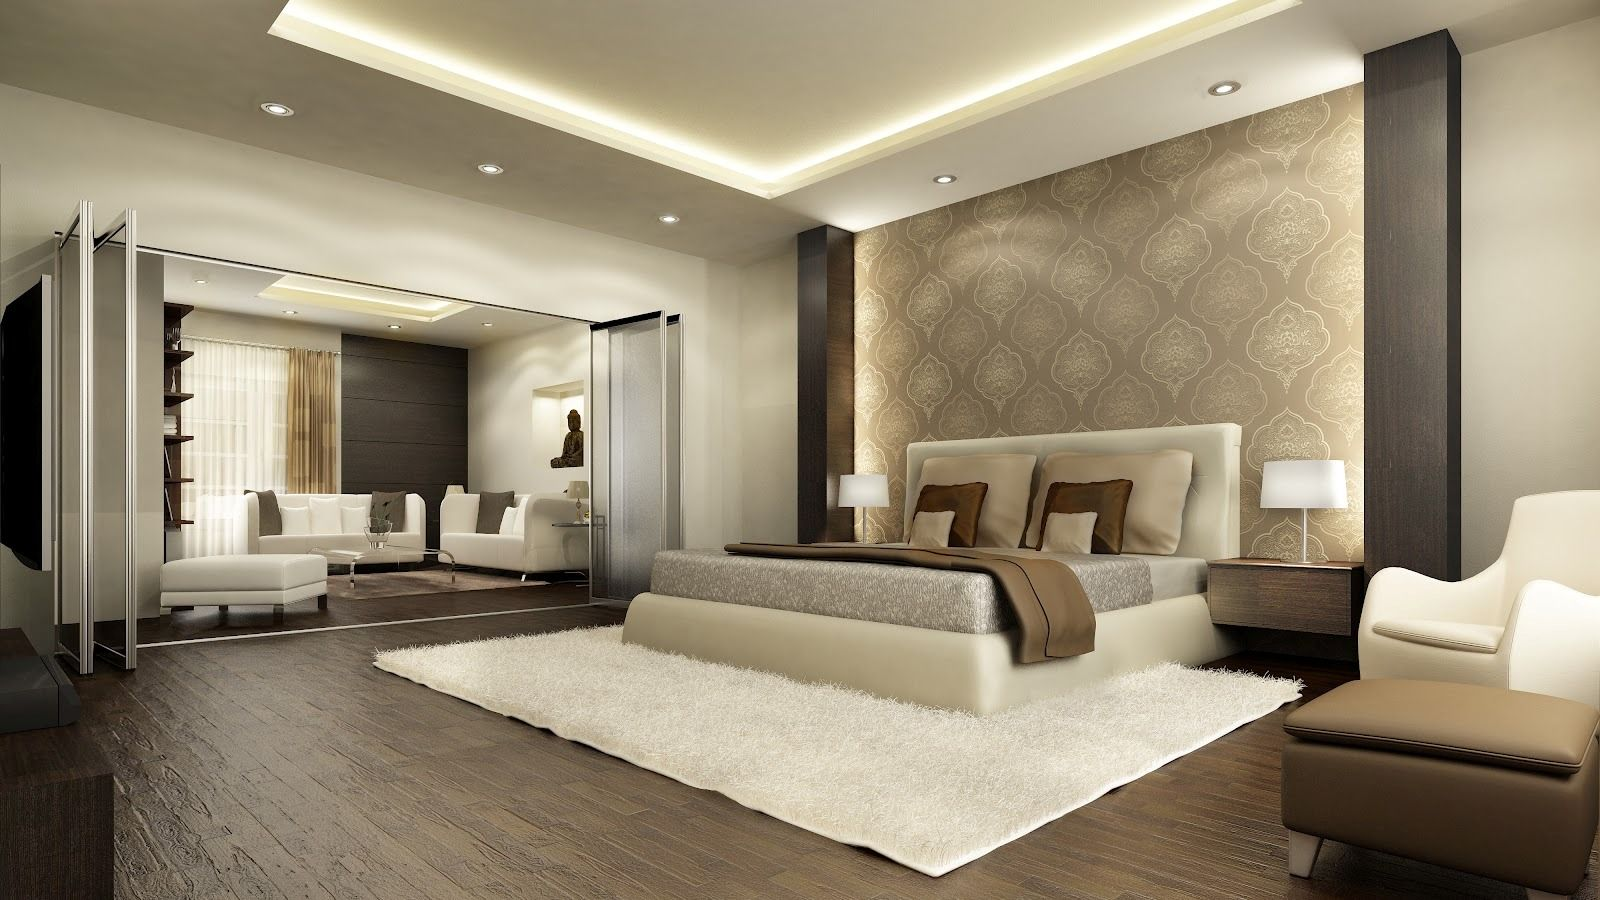 Master Bedroom Decorating Ideas Contemporary stunning master bedroom designs contemporary - home design ideas